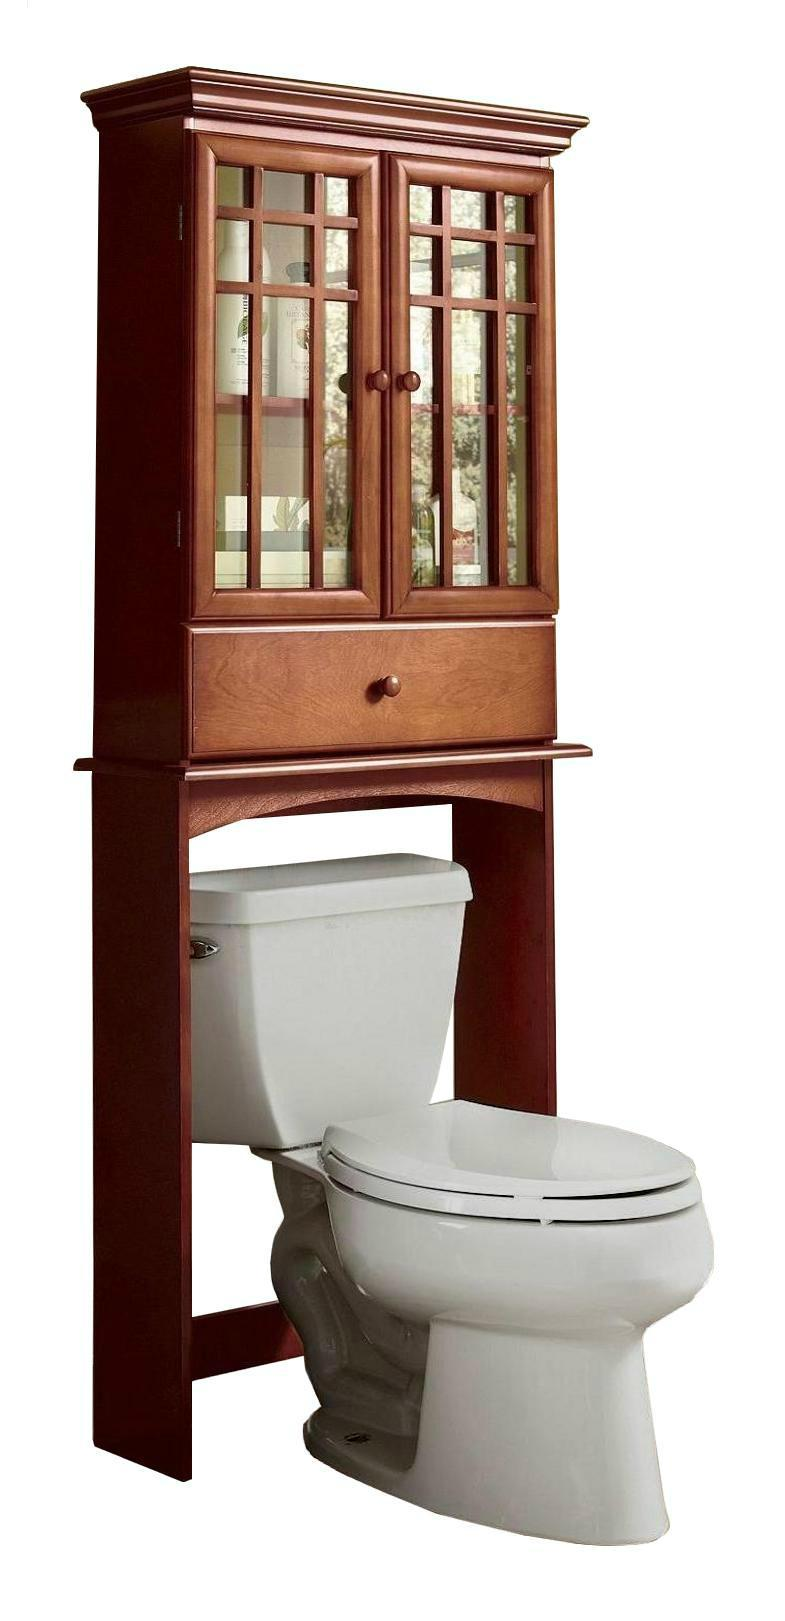 Bathroom Shelving Unit Amp Space Savers Over The Toilet